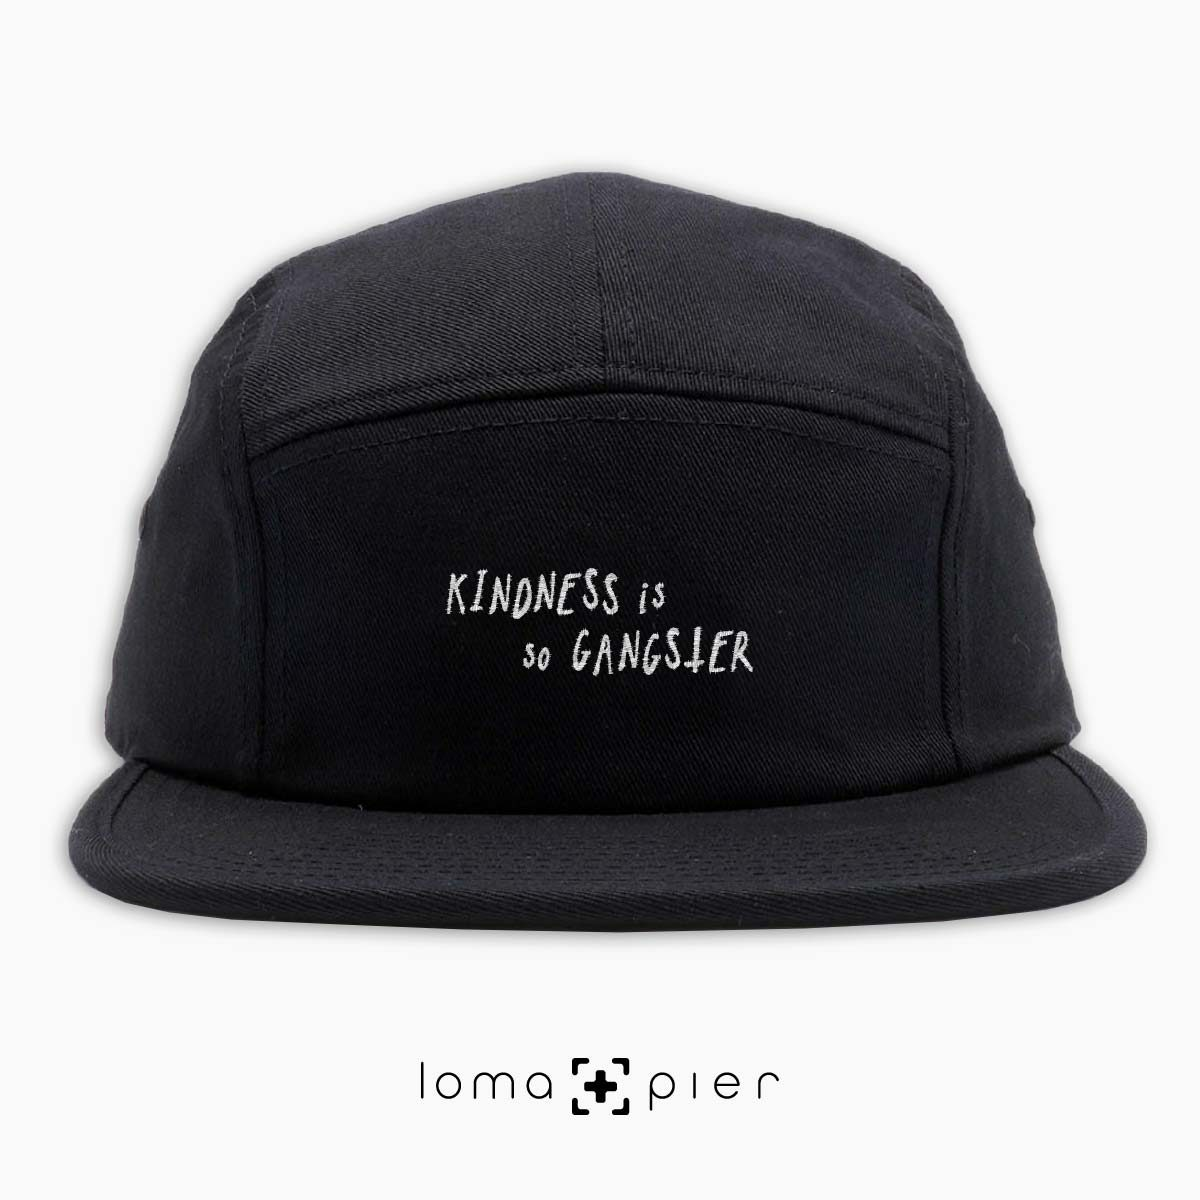 KINDNESS IS SO GANGSTER typography embroidered on a black cotton 5-panel hat with white thread by loma+pier hat store